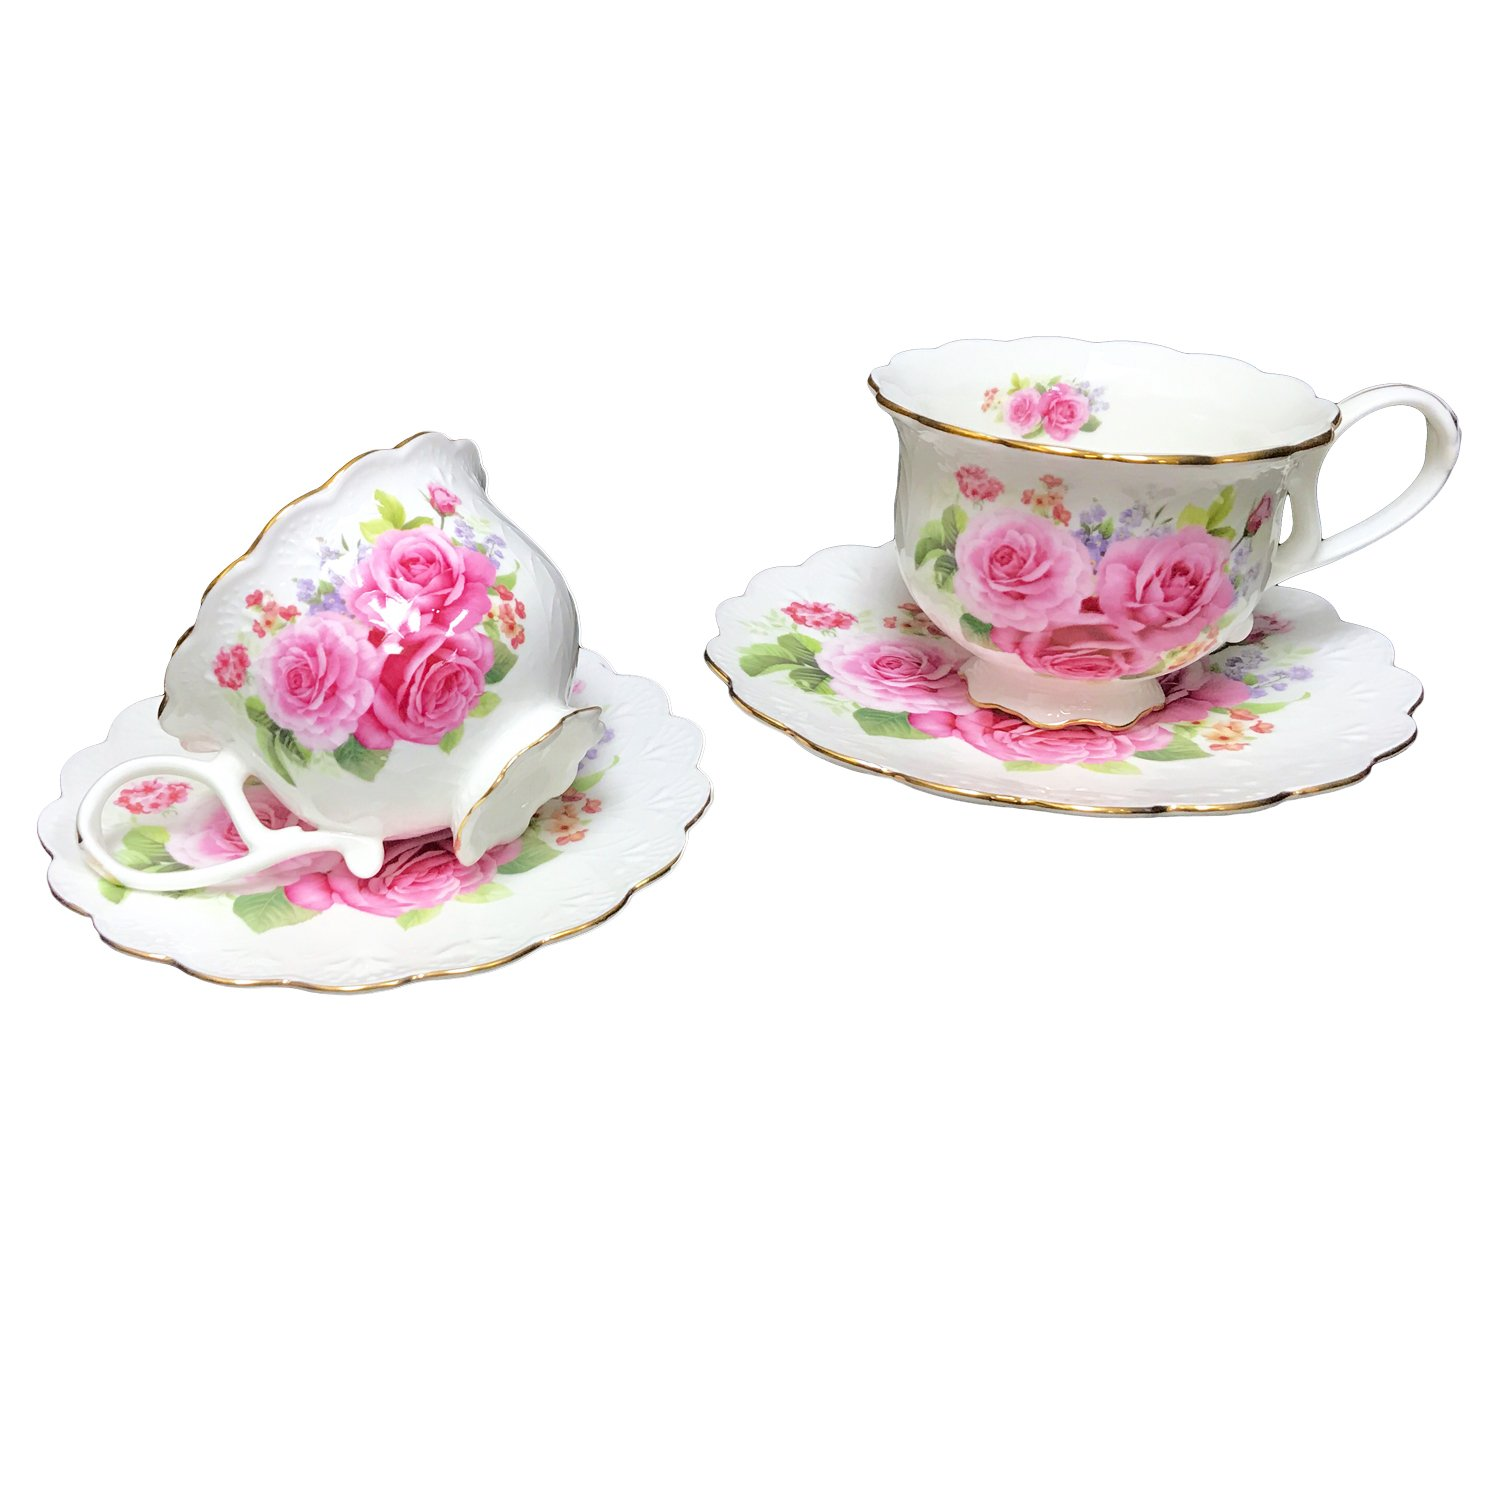 Hampstead Collection Pink Roses 8-Ounce Porcelain Tea Cups and Saucers, Set of 2 Homestead Heath